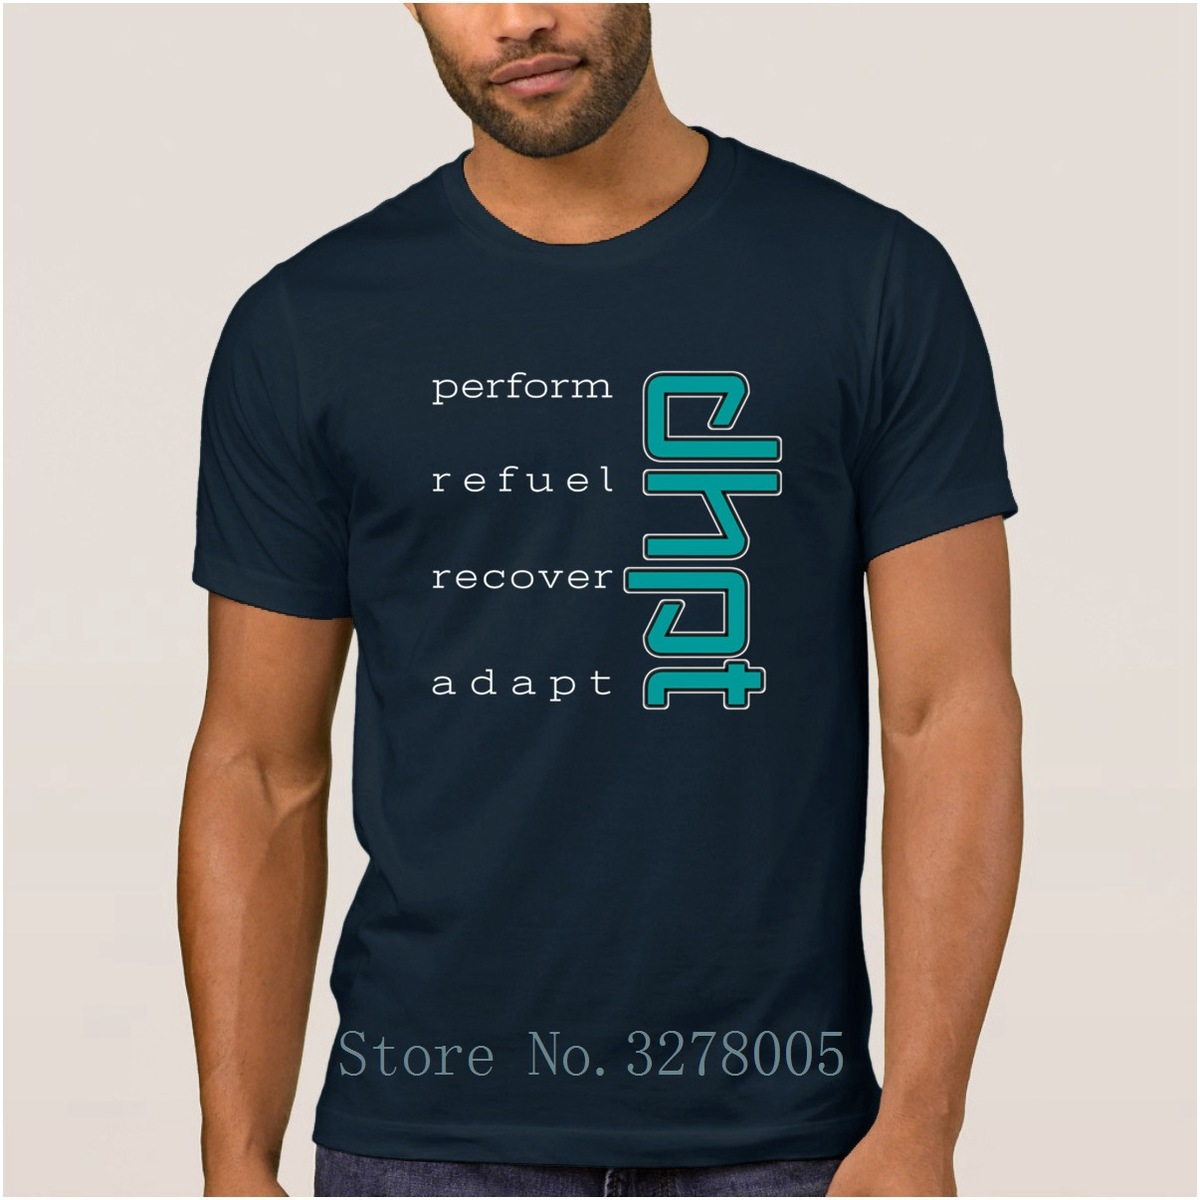 Blue Dhpt Perform Refuel Recover Adapt Design Fun Men T Shirt Outfit Summer Style T-Shirt Man Clothes Round Collar Tshirt Large